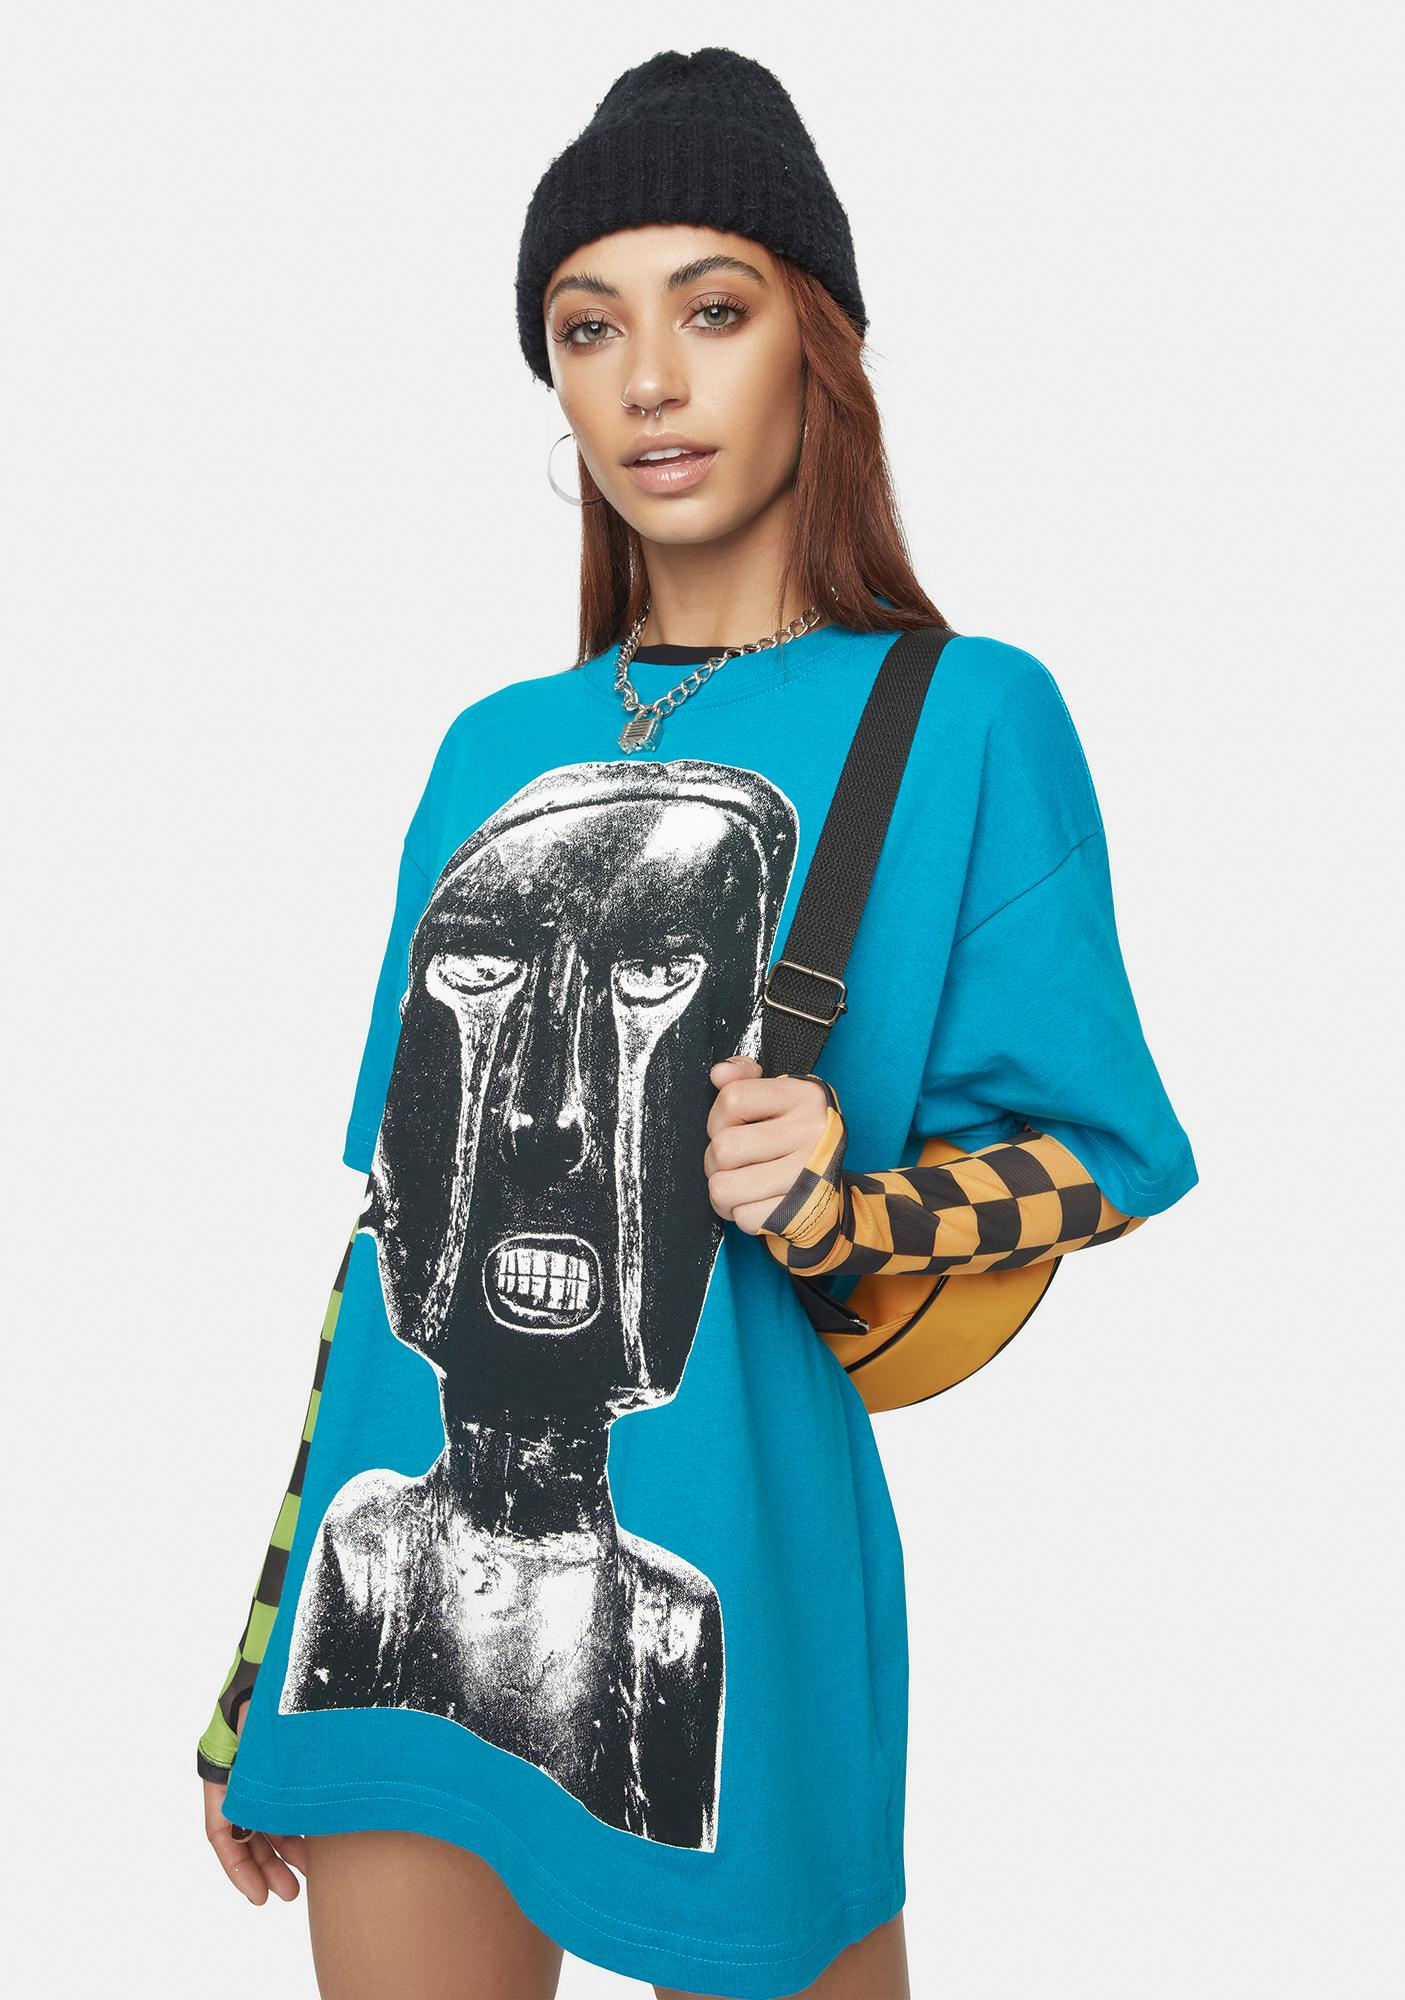 Obey Turquoise Earth Crisis Sustainable Graphic Tee